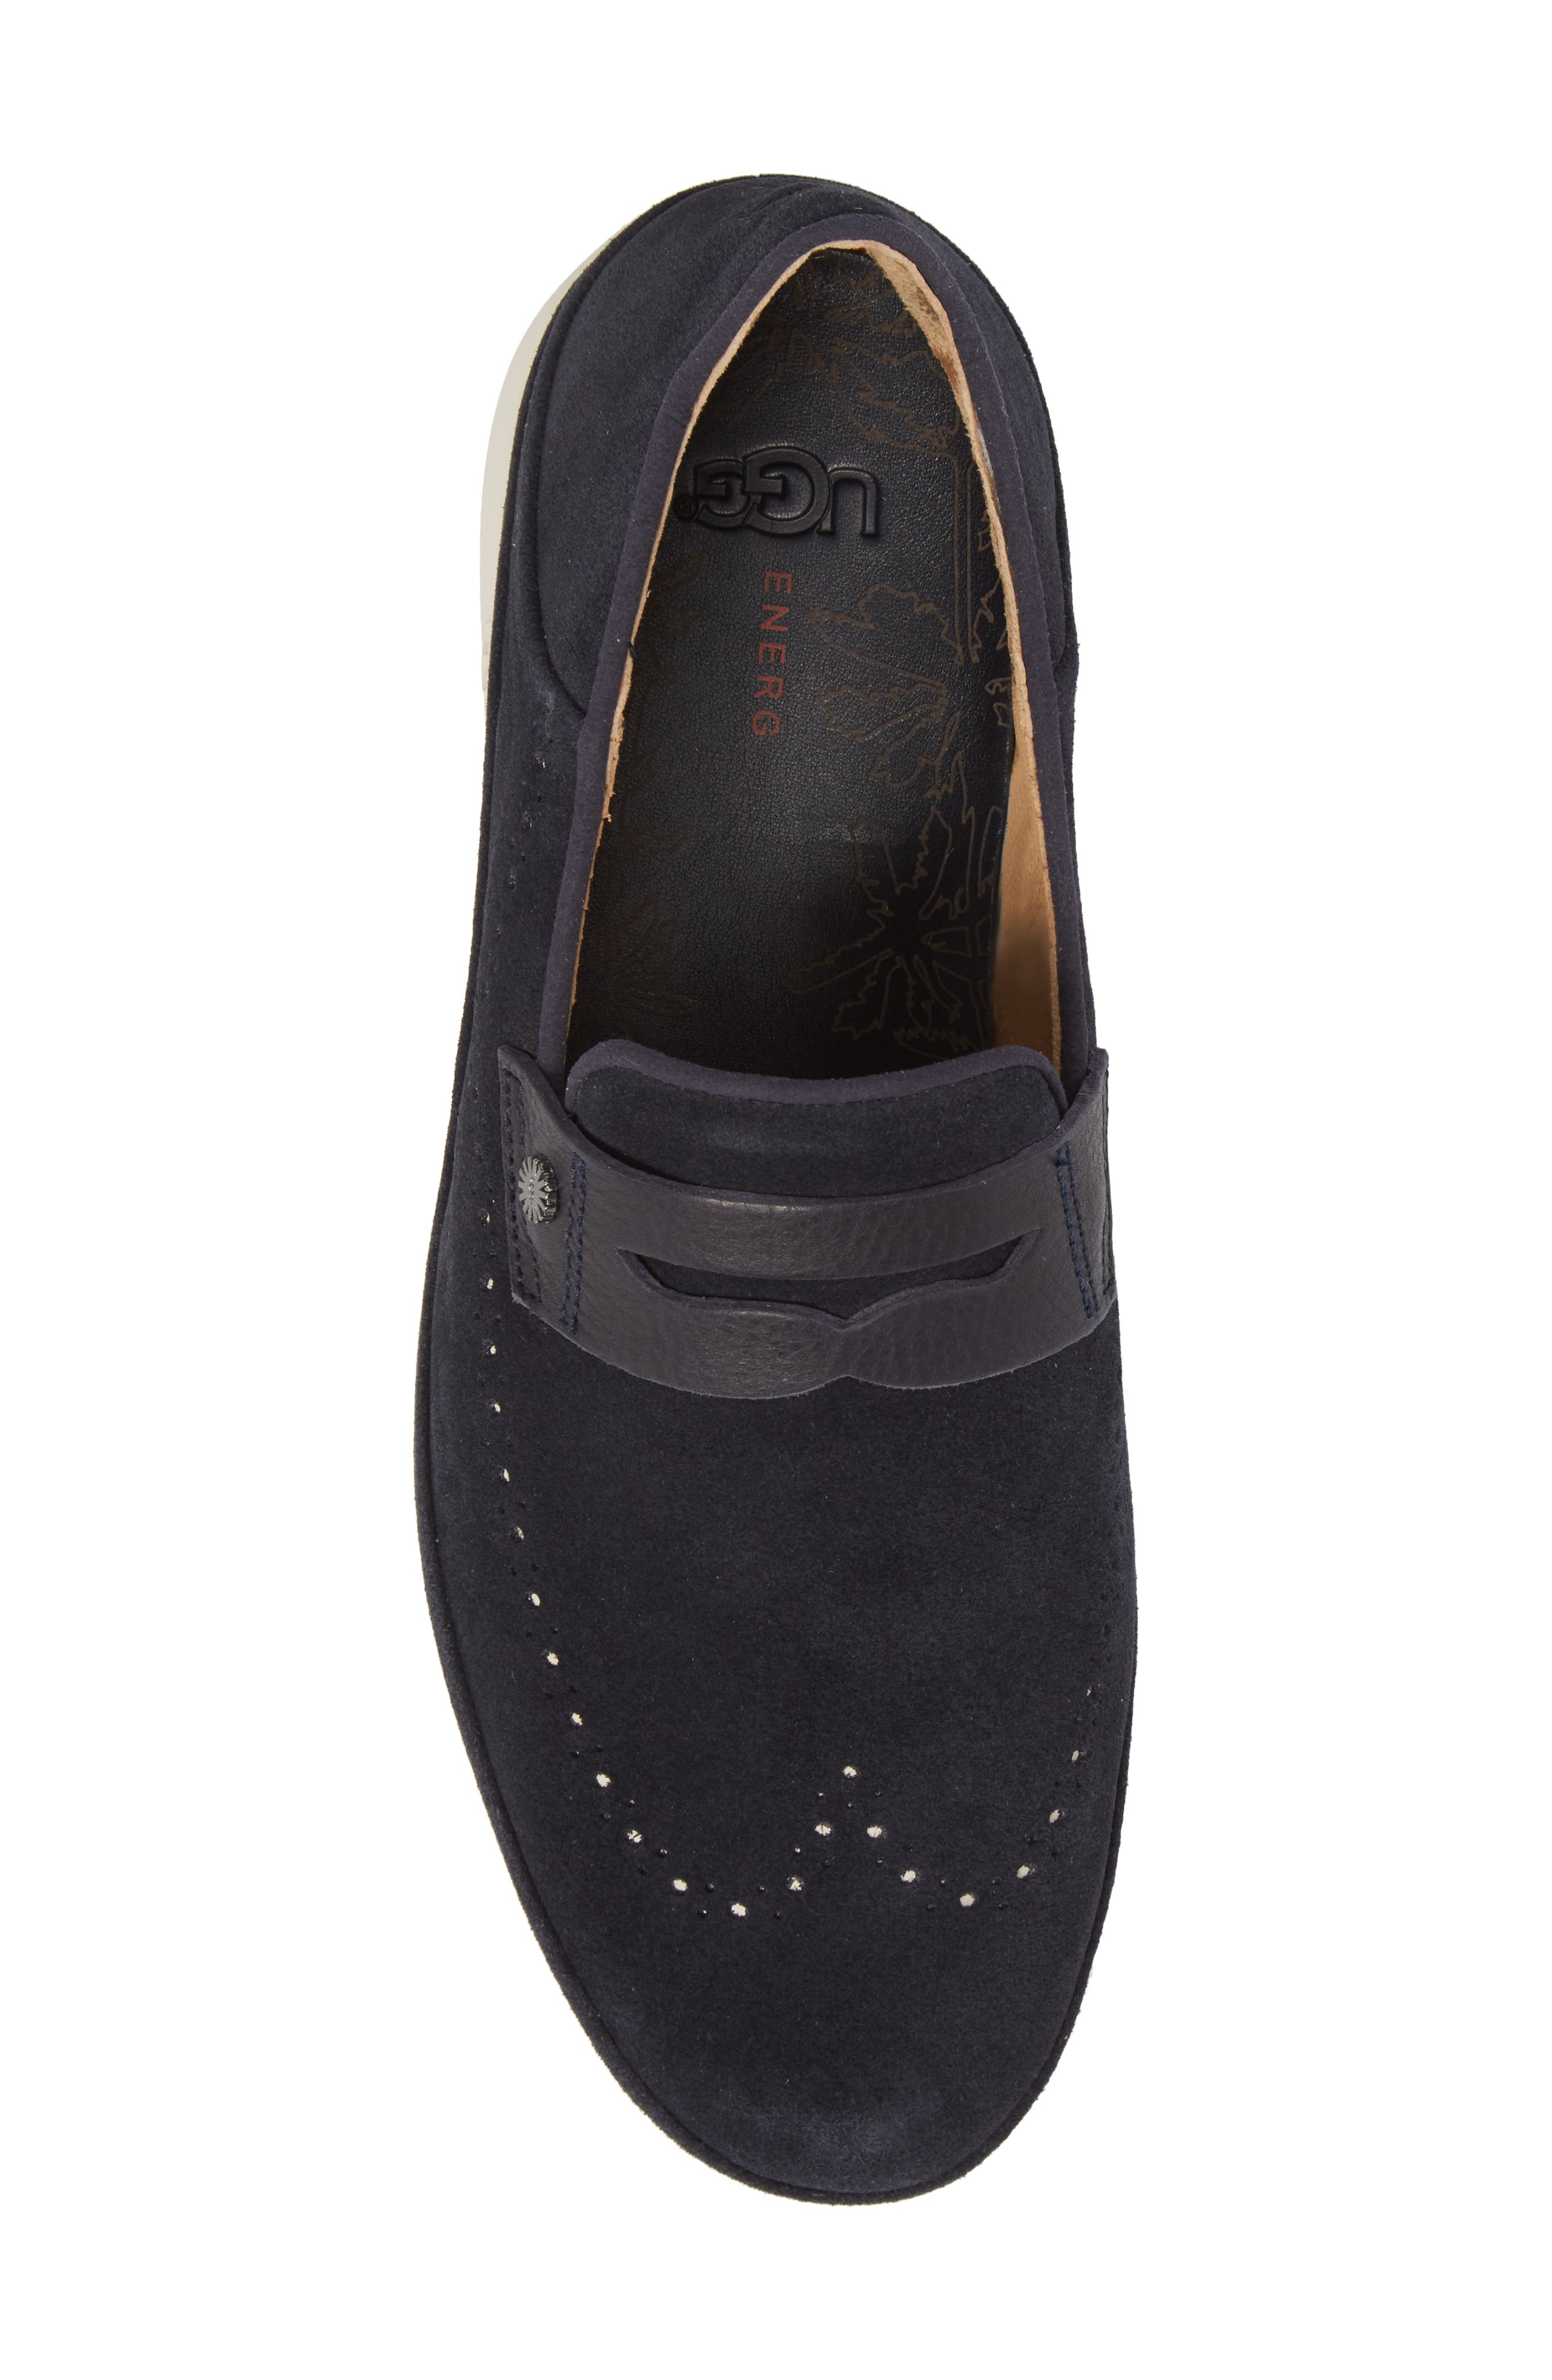 Cali Collapsible Wingtip Penny Loafer,                             Alternate thumbnail 3, color,                             Navy Leather